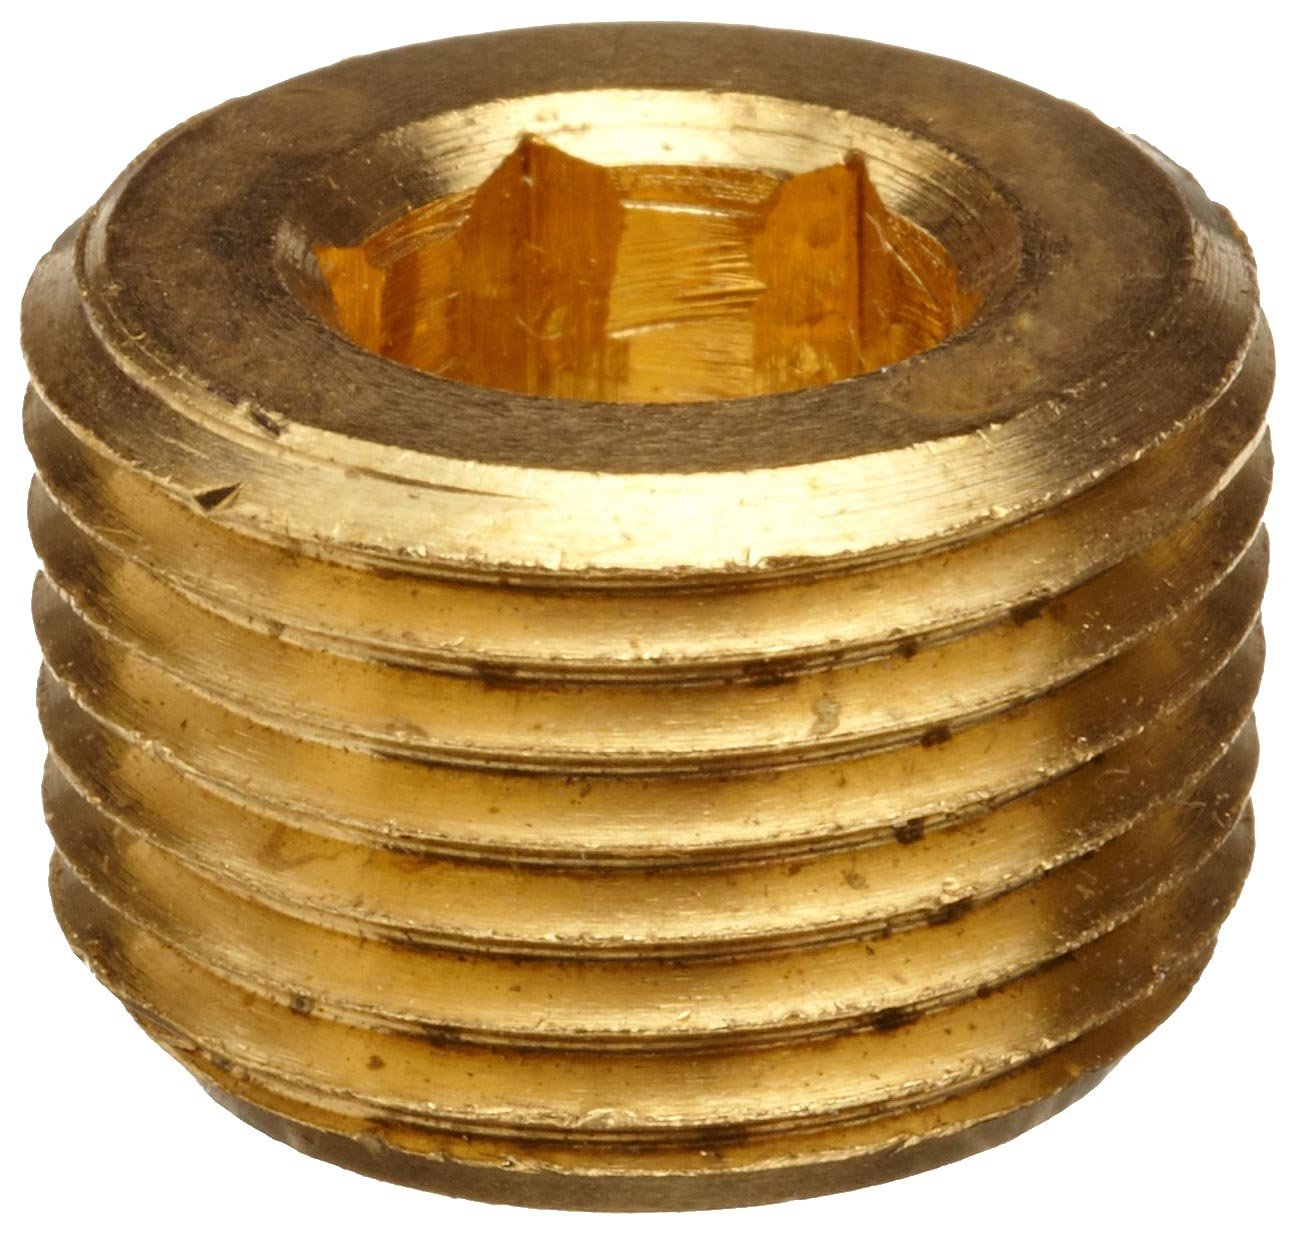 1//4 Male Thread x 1//4 Male Thread Brass Pack of 10 1//4 Male Thread x 1//4 Male Thread Pack of 10 Parker Hannifin 215PN-4-pk10 Close Nipple Pipe Fitting Parker Hannifin Corporation